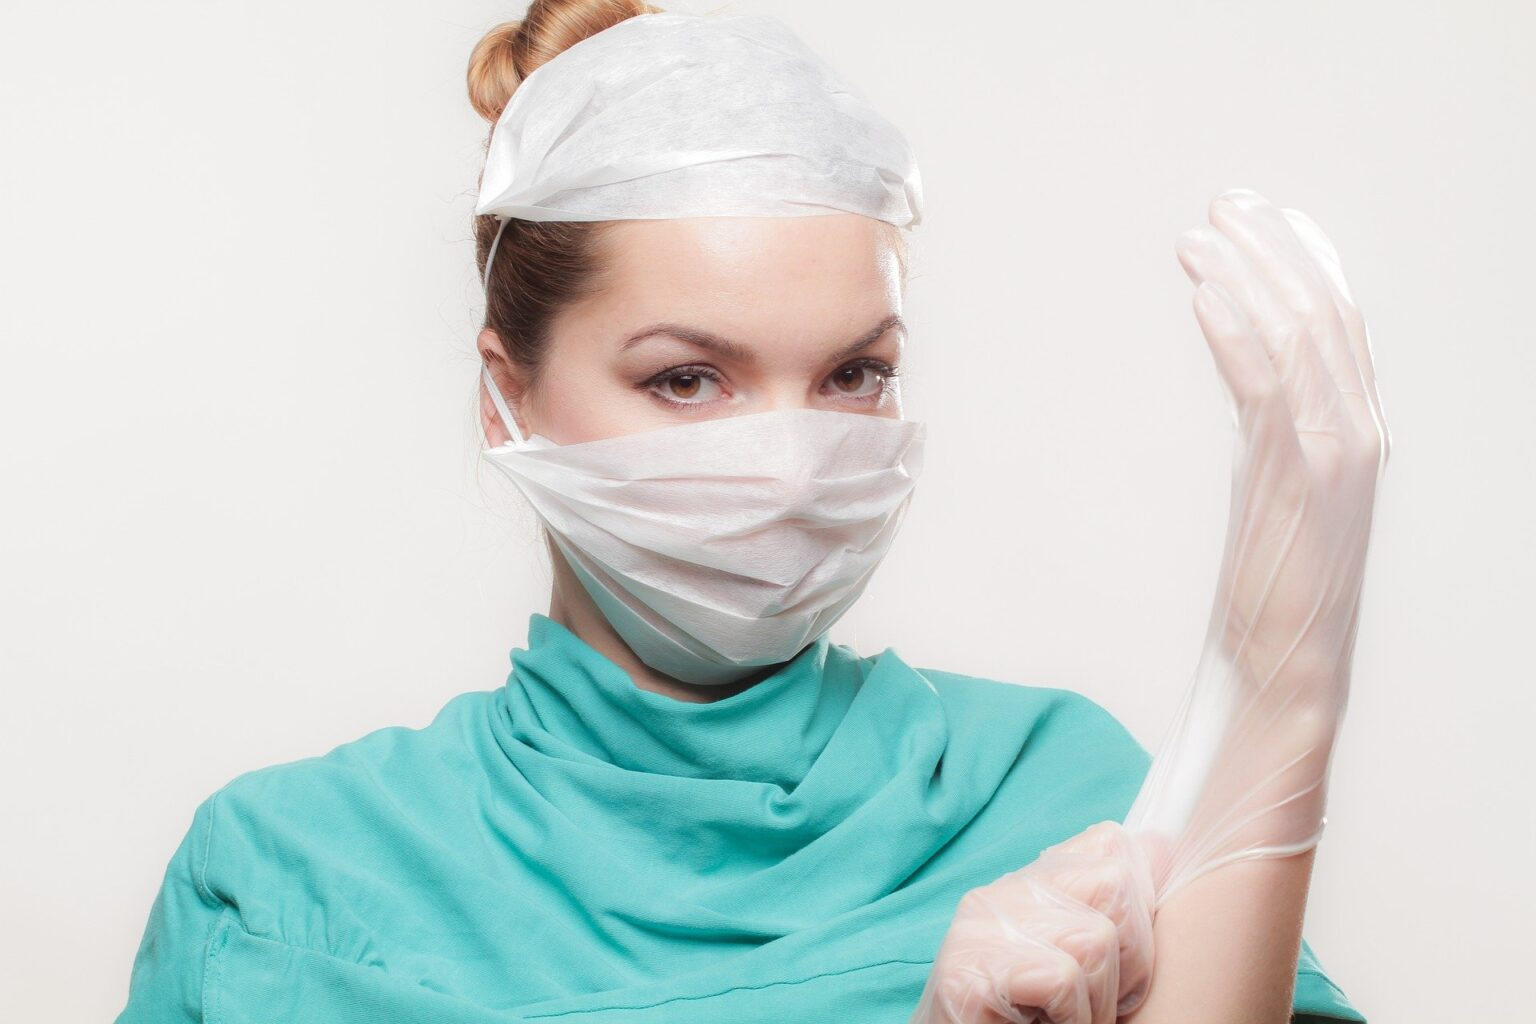 female doctor in green scrubs and a face mask, putting on white gloves illustrating best fertility now smear test article